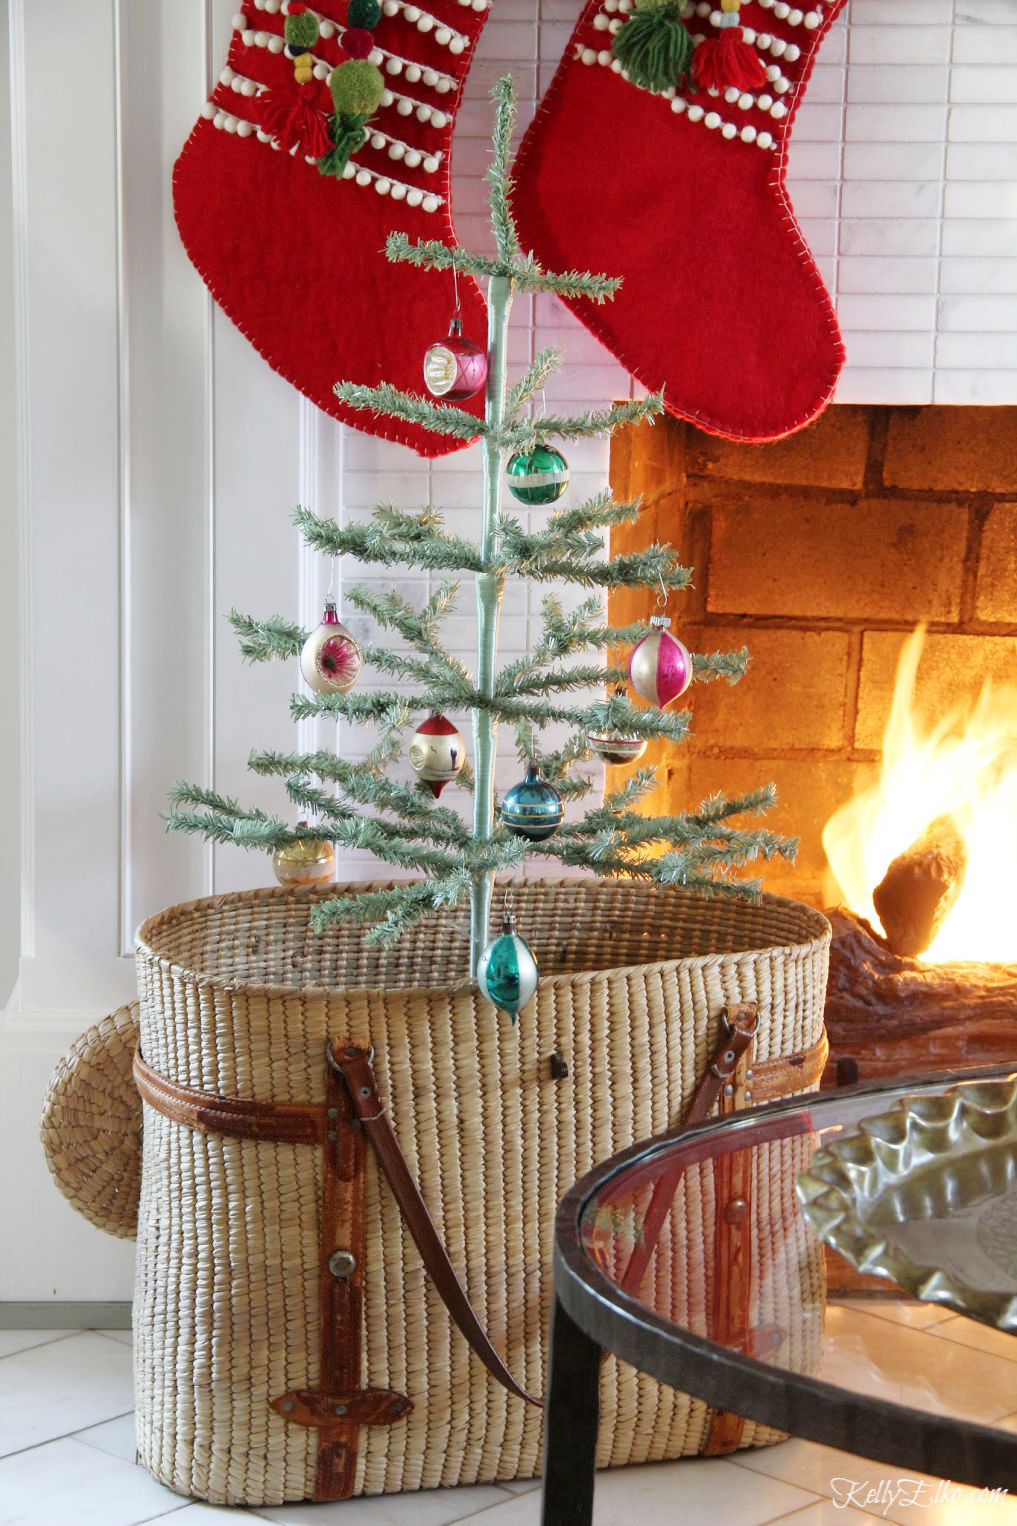 Beautiful Christmas mantel with feather trees in a basket and red stockings kellyelko.com #christmas #christmasdecor #christmasdecorating #christmashome #christmastour #diychristmas #christmasideas #christmasmantel #christmastree #christmasornaments #vintagechristmas #farmhousechristmas #colorfulchristmas #creativechristmas #kellyelko